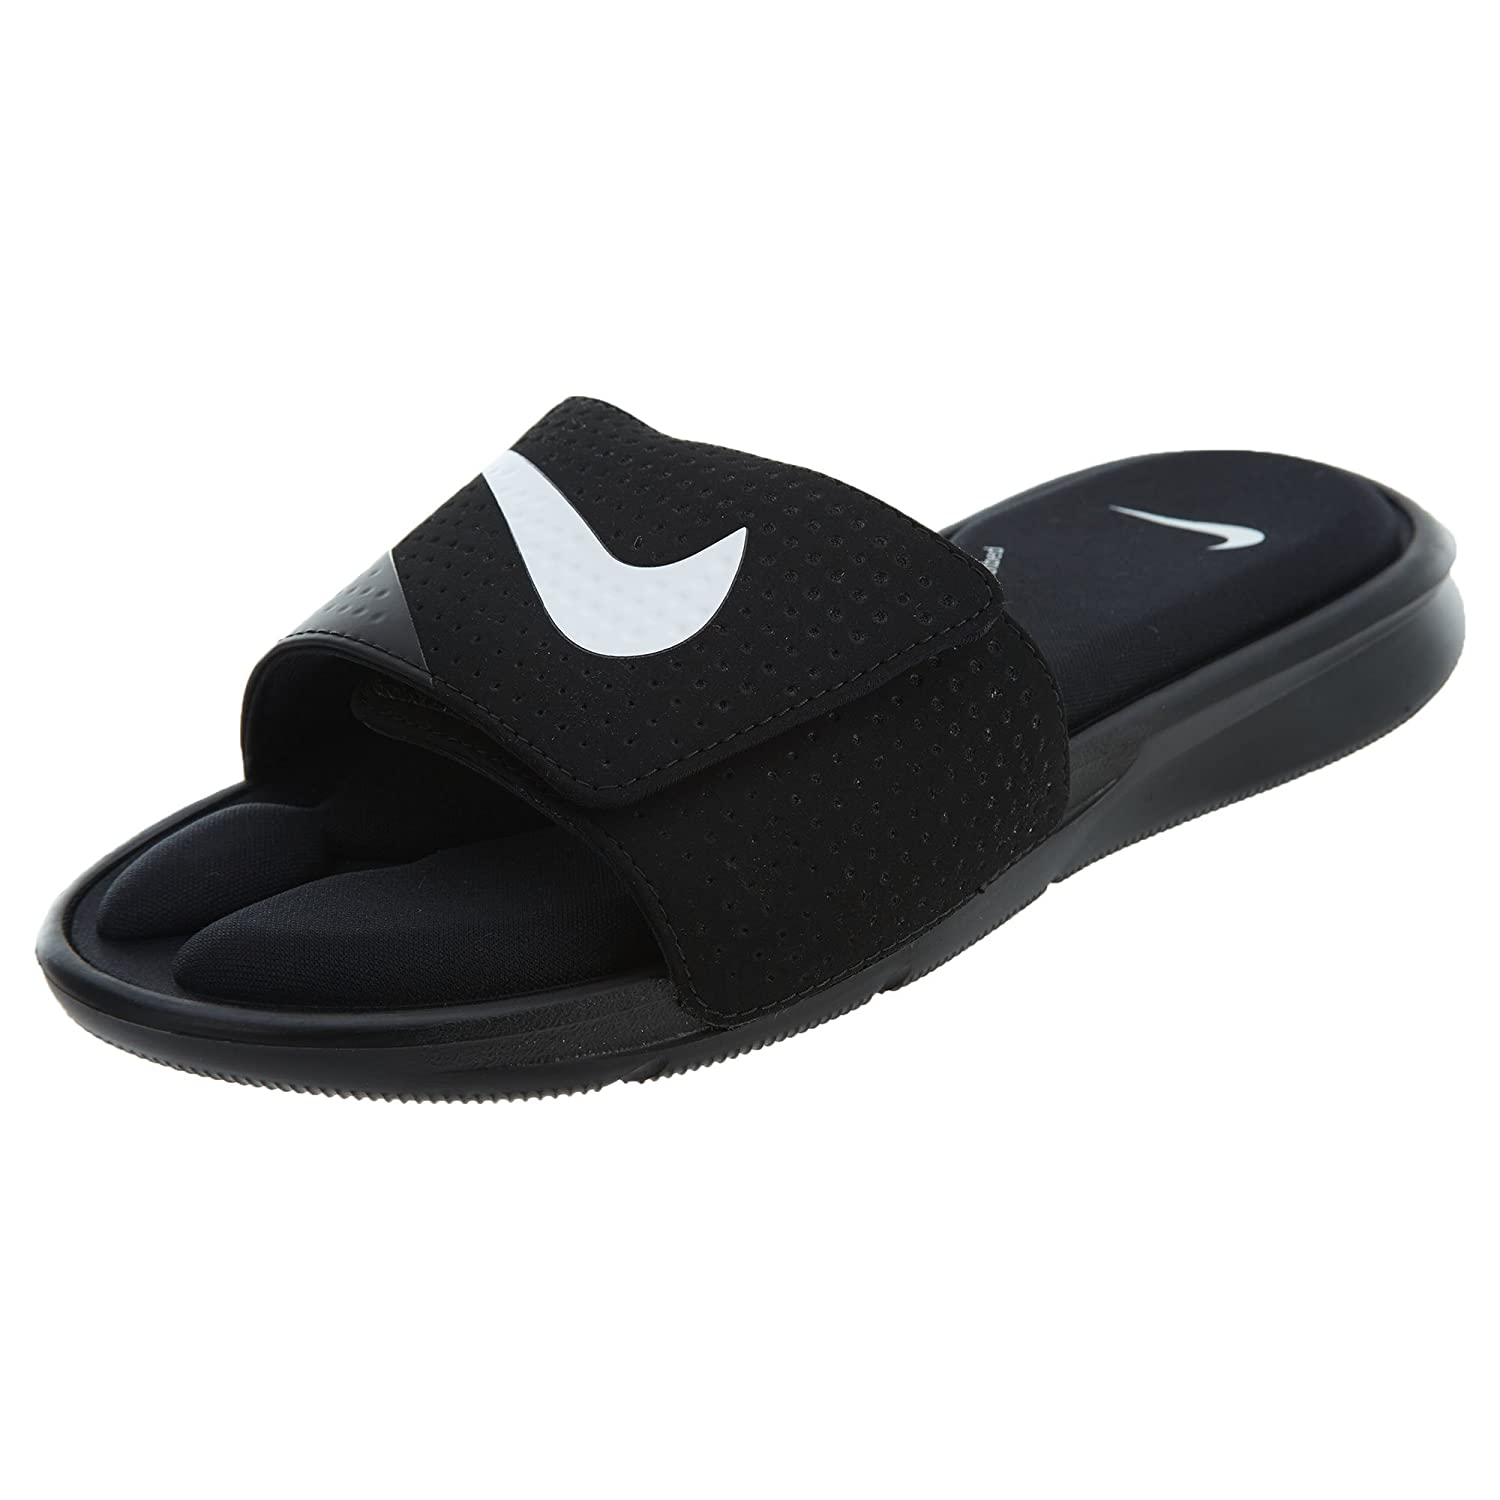 NIKE Ultra Comfort Slide Mens Fashion-Sneakers 882687  Amazon.co.uk  Shoes    Bags 83792fae4